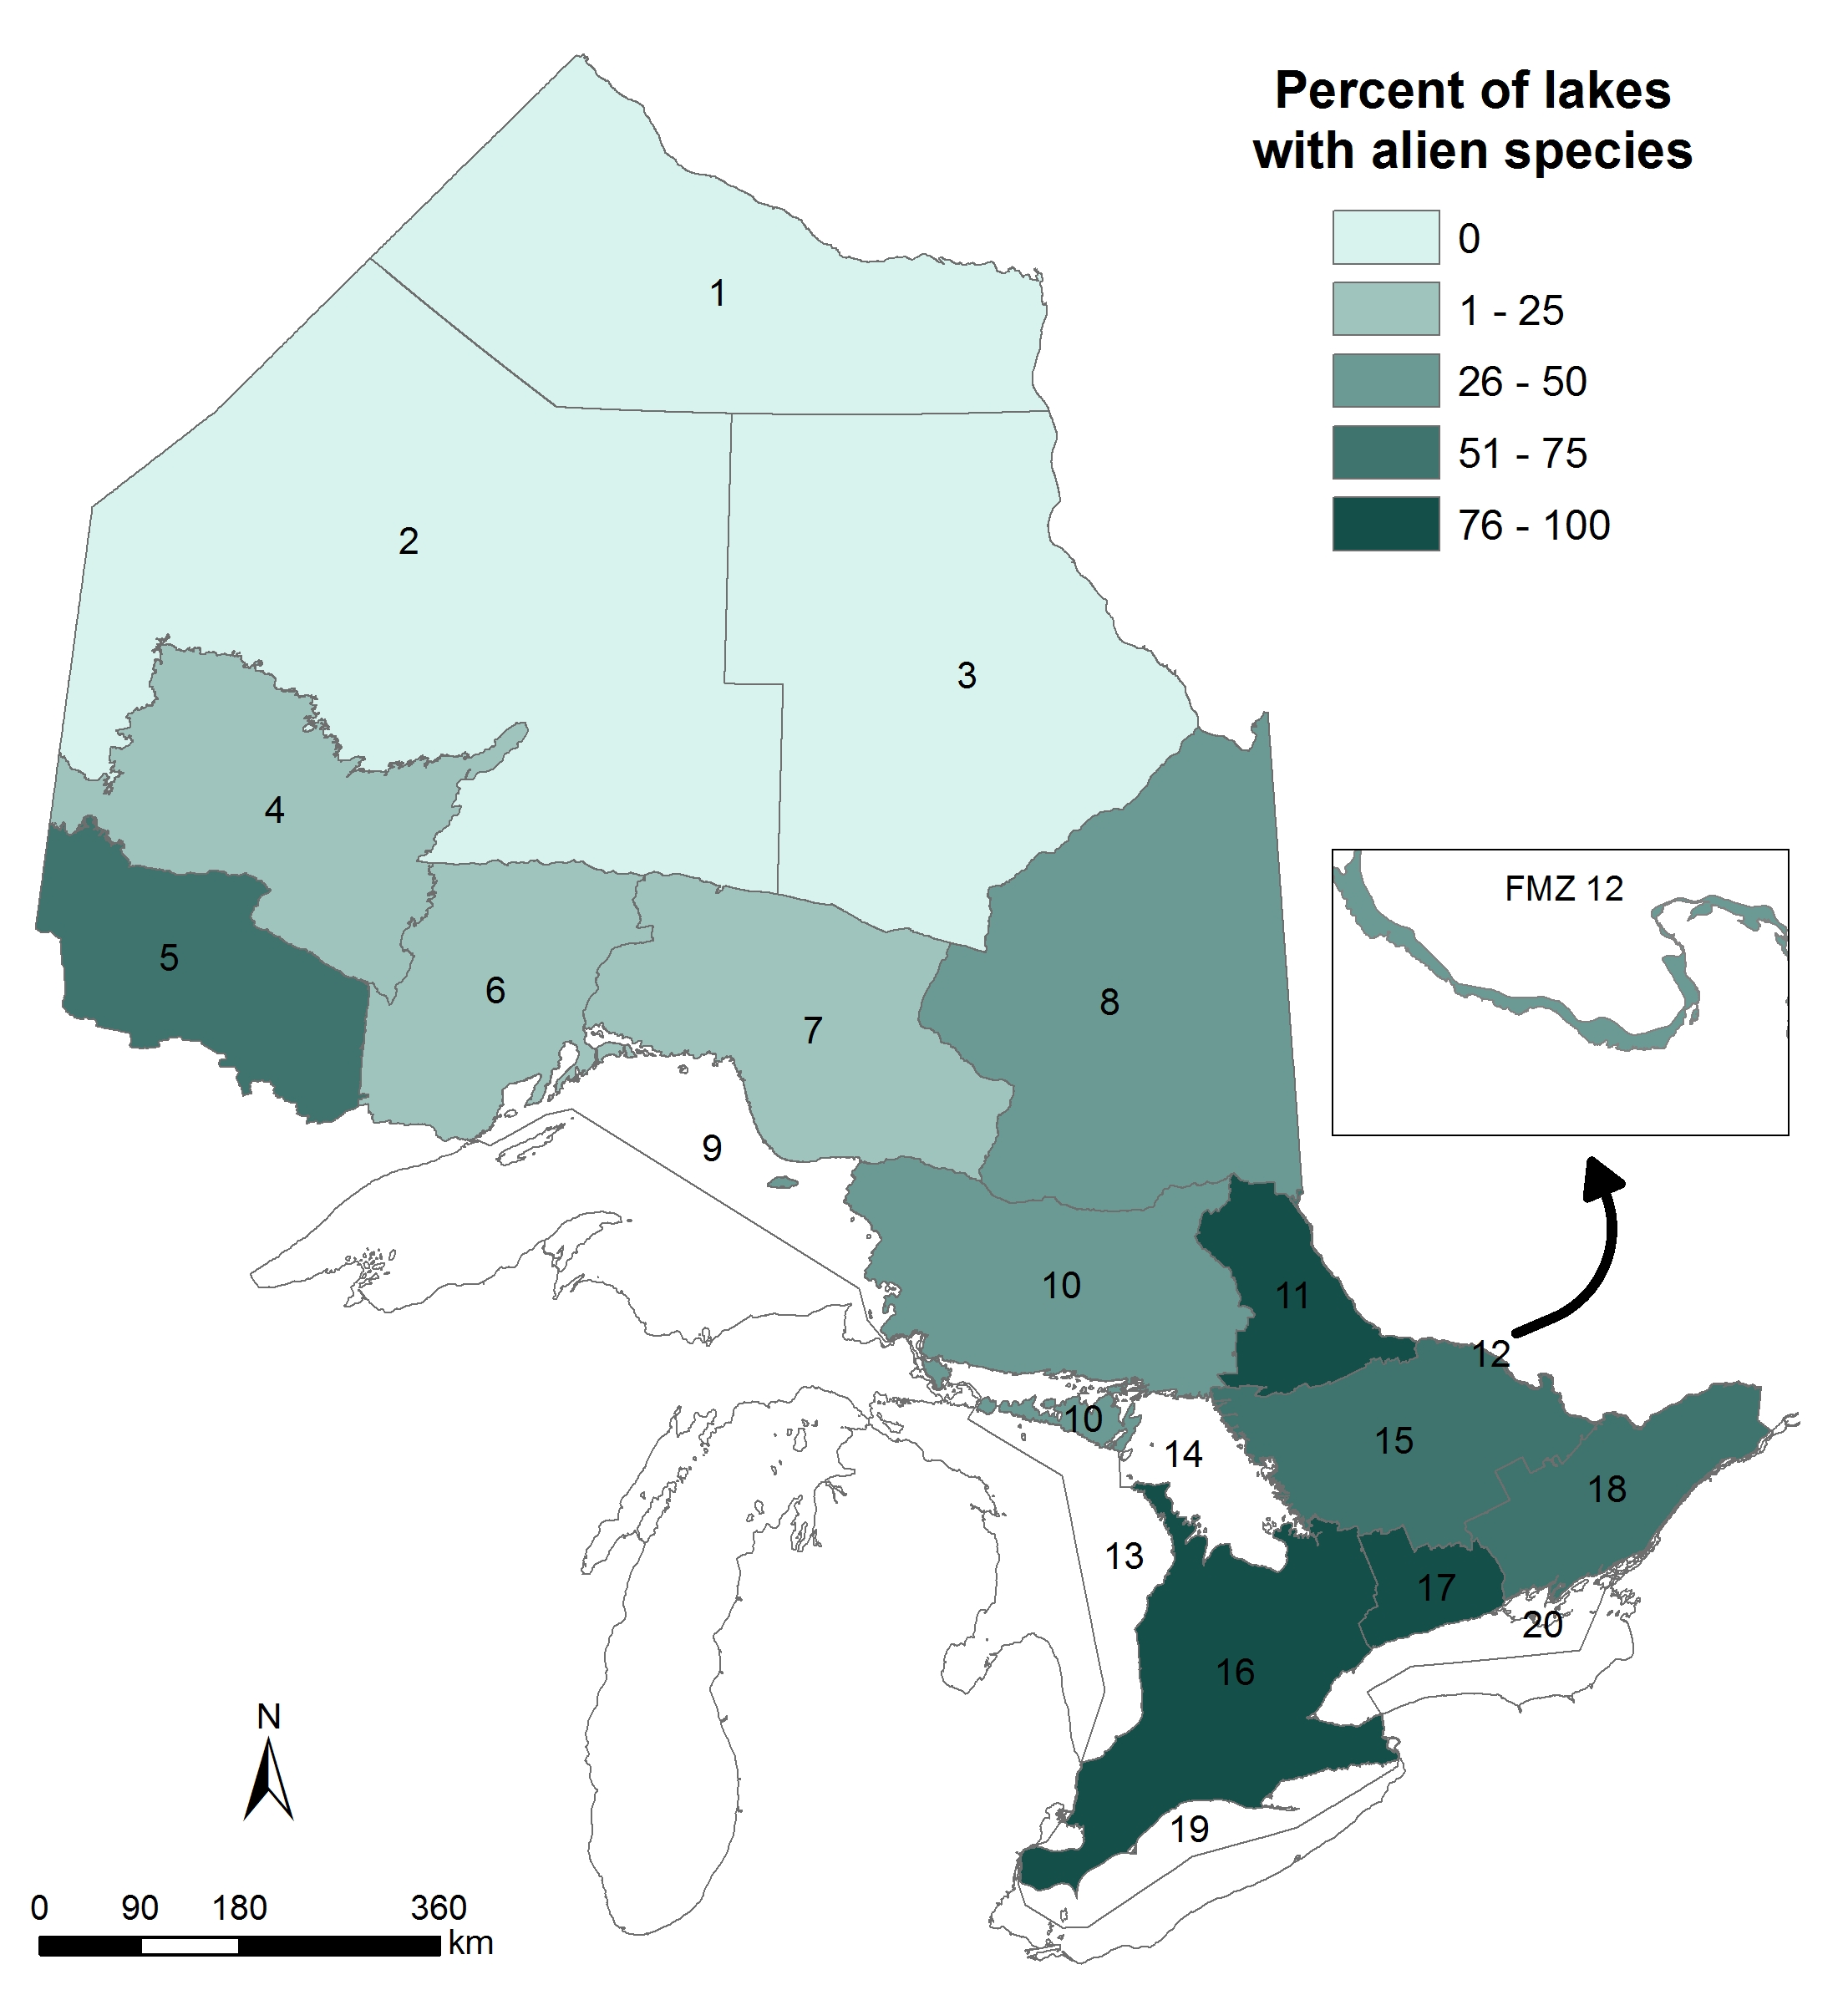 his is amp of Ontario showing the percentage of lakes in each of Ontario's Fisheries Management Zones with alien species detection in the Br0ad-scale Monitoring between 2008 and 2012. The percentage of lakes with alien species detections was highest (76-100%) in Fisheries Management Zones 11, 16 and 17 in southwestern and central Ontario. None of the lakes sampled in Fisheries Management Zones 1-3 in the Far North had alien species detections,